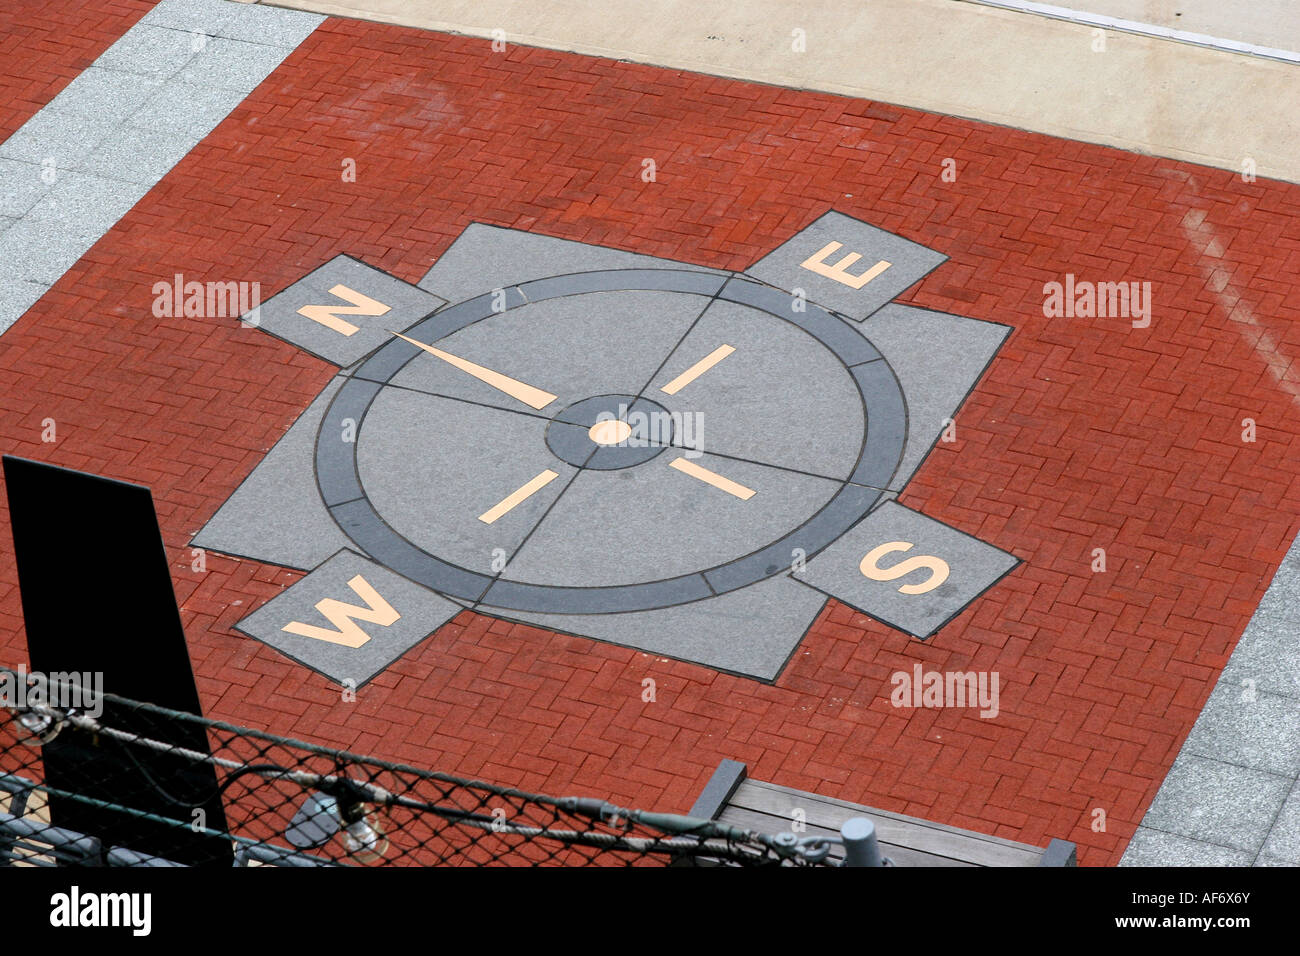 USS New Jersey BB 62 site at Camden New Jersey showing a wind rose with the cardinal directions on the ground - Stock Image